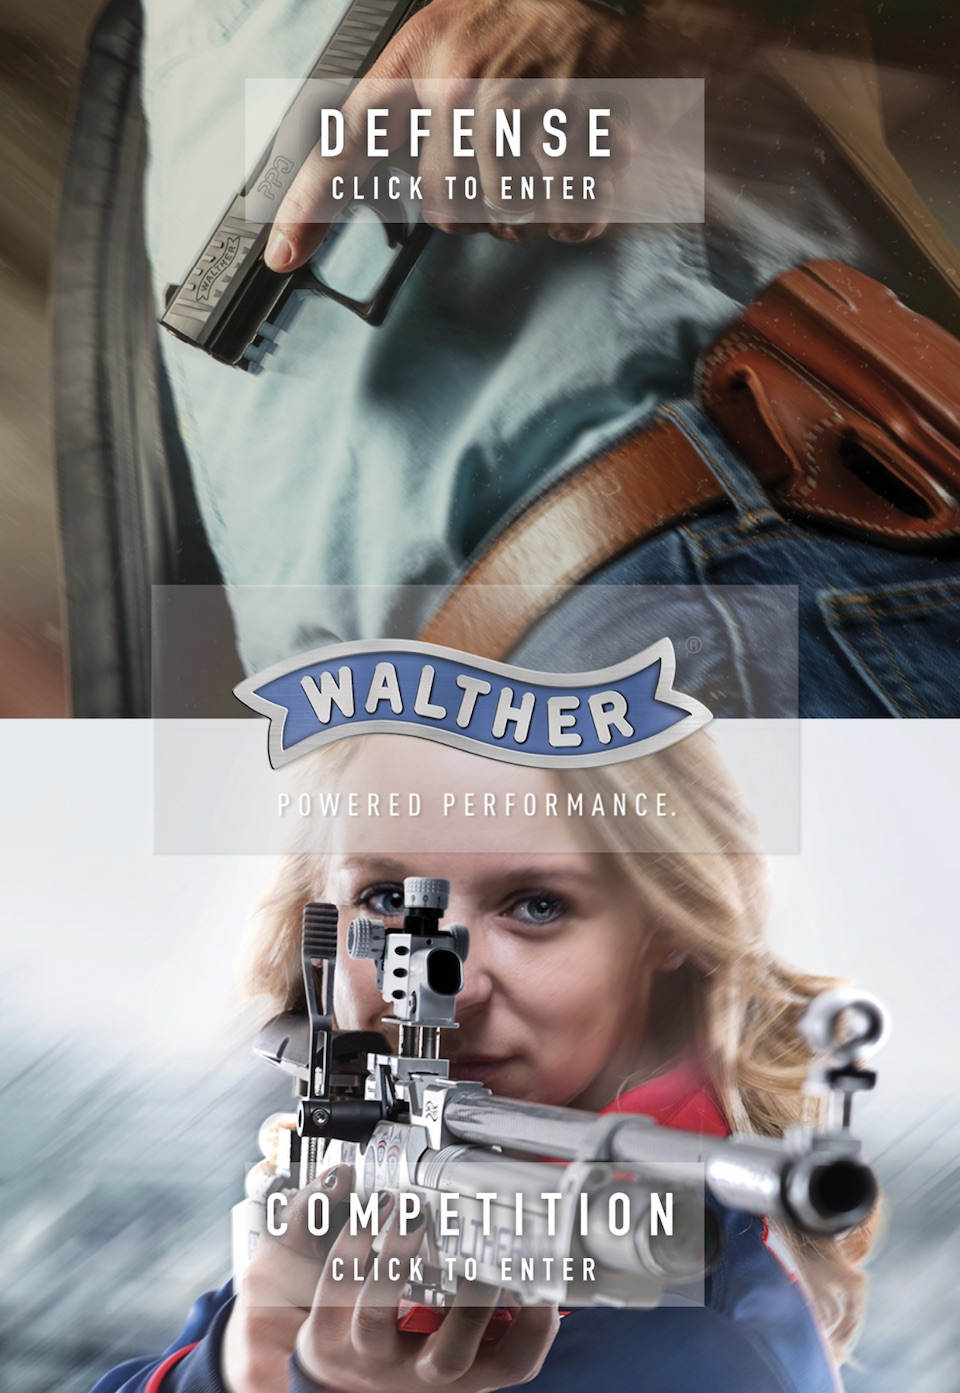 Walther website graphic